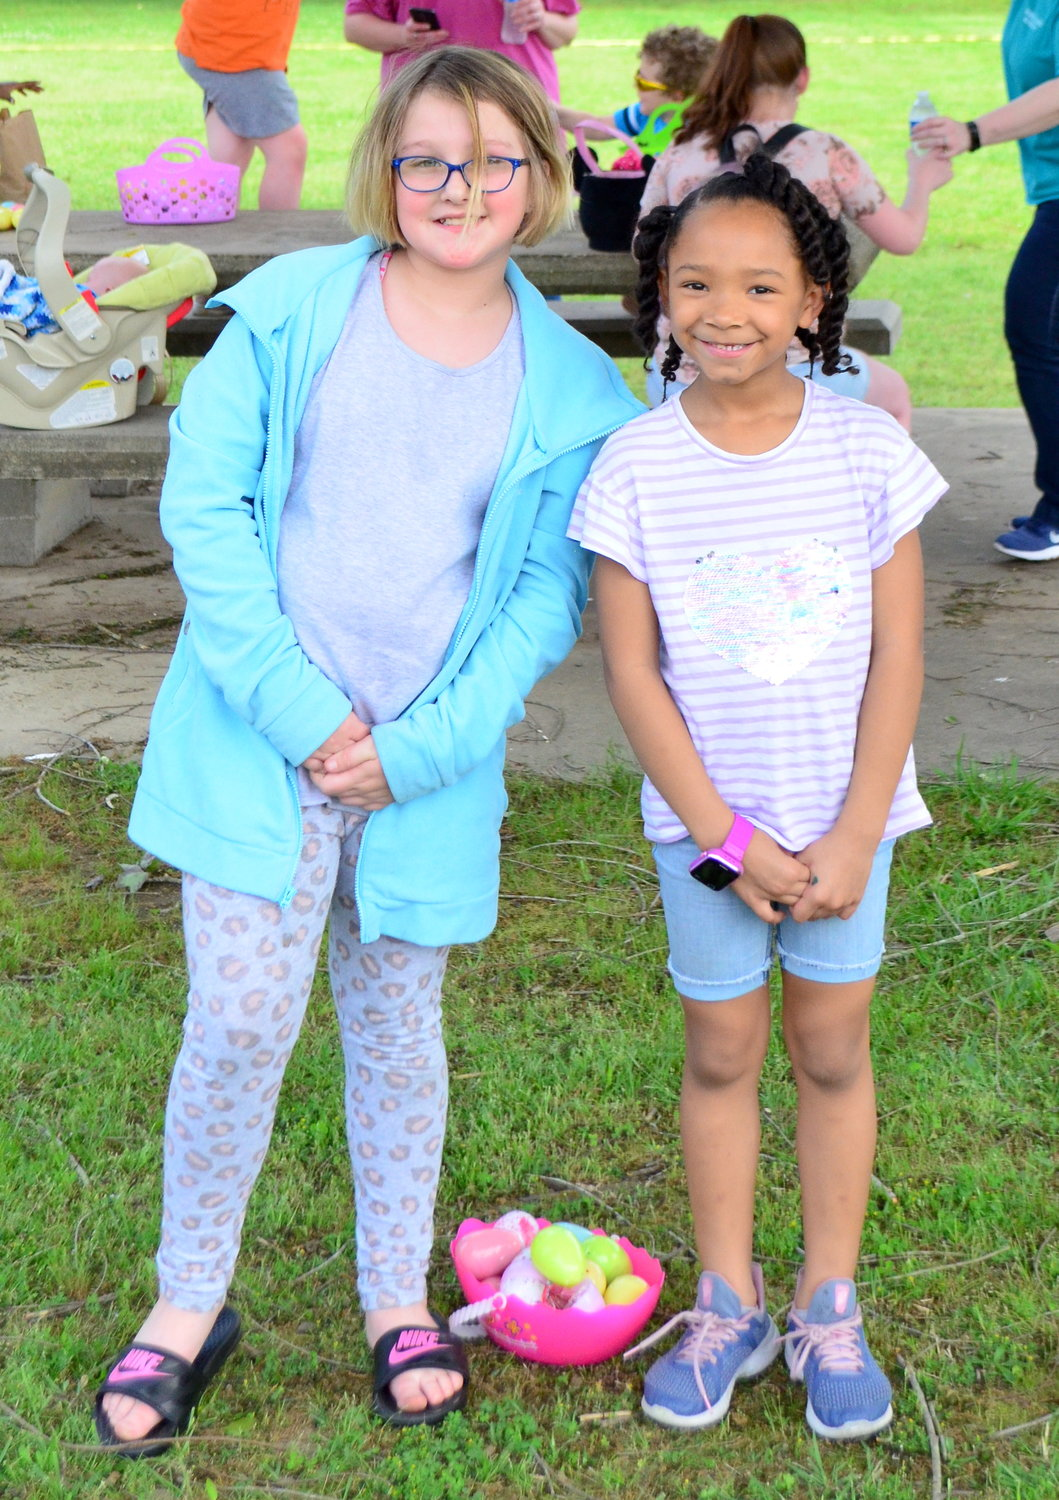 The Jasper Housing Authority hosted an Easter egg hunt today near their facility off Highway 69.